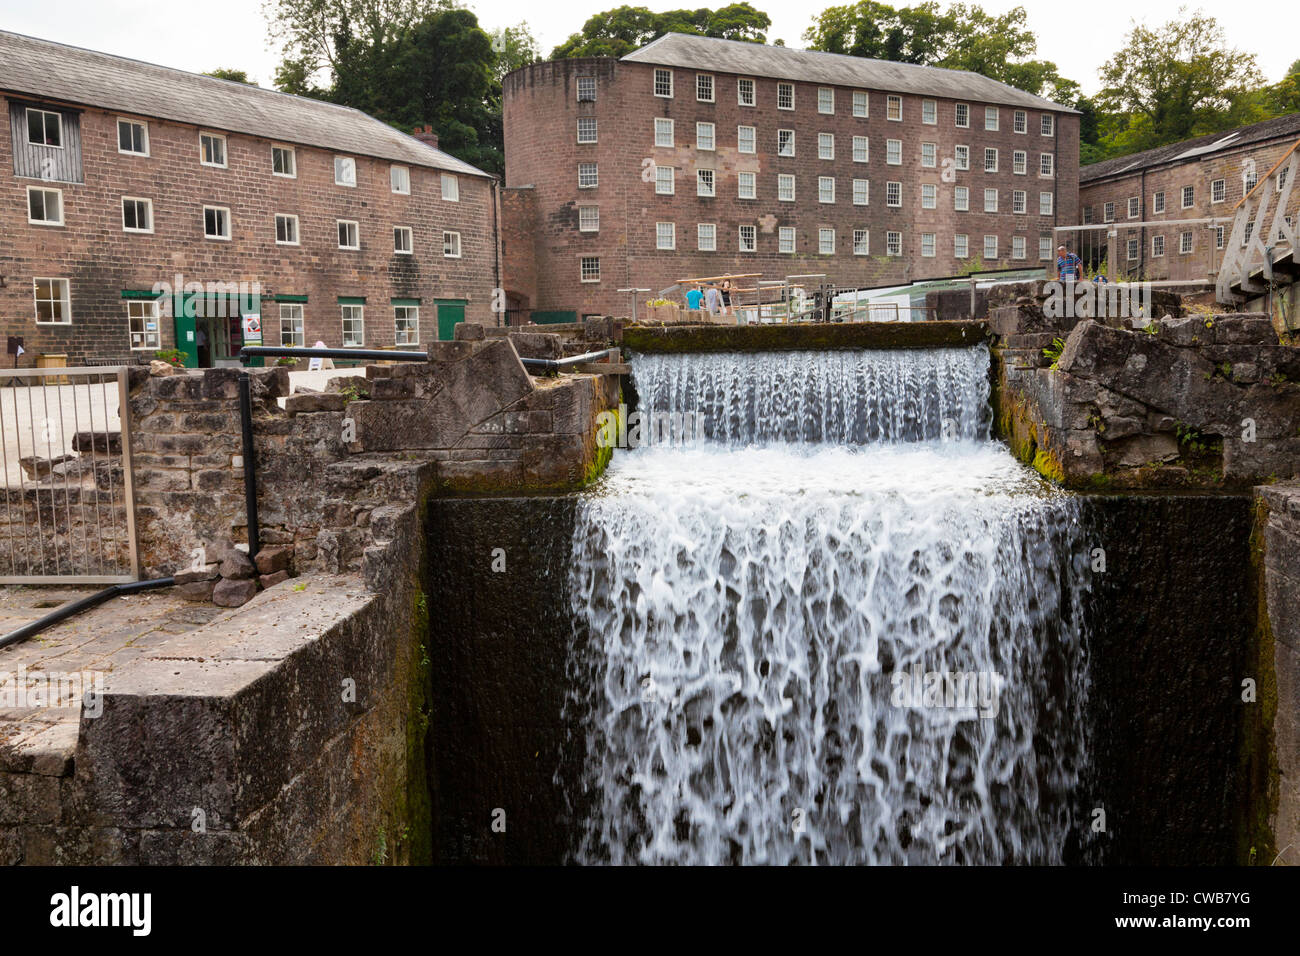 Water powered mill buildings at Cromford Mill, used for cotton spinning. Part of the Derwent Valley Mills World - Stock Image